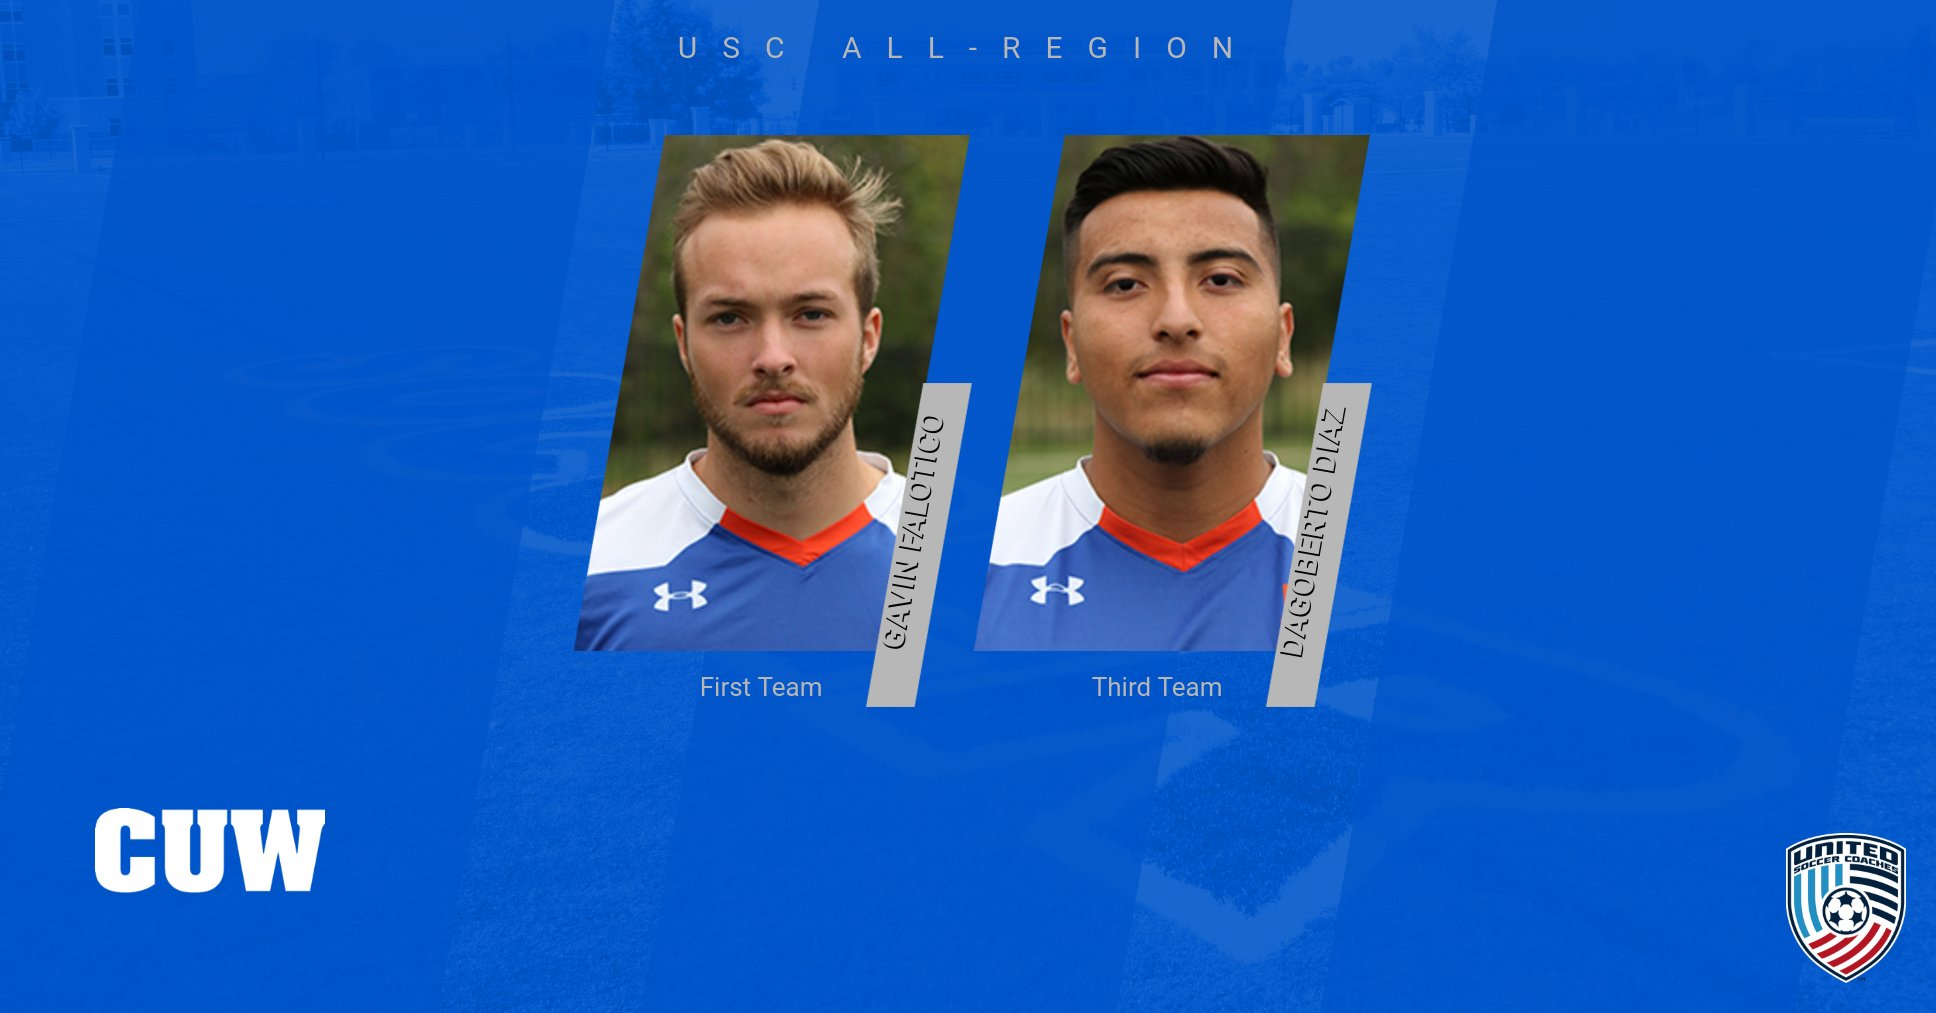 Men's Soccer duo claims USC All-Region honors